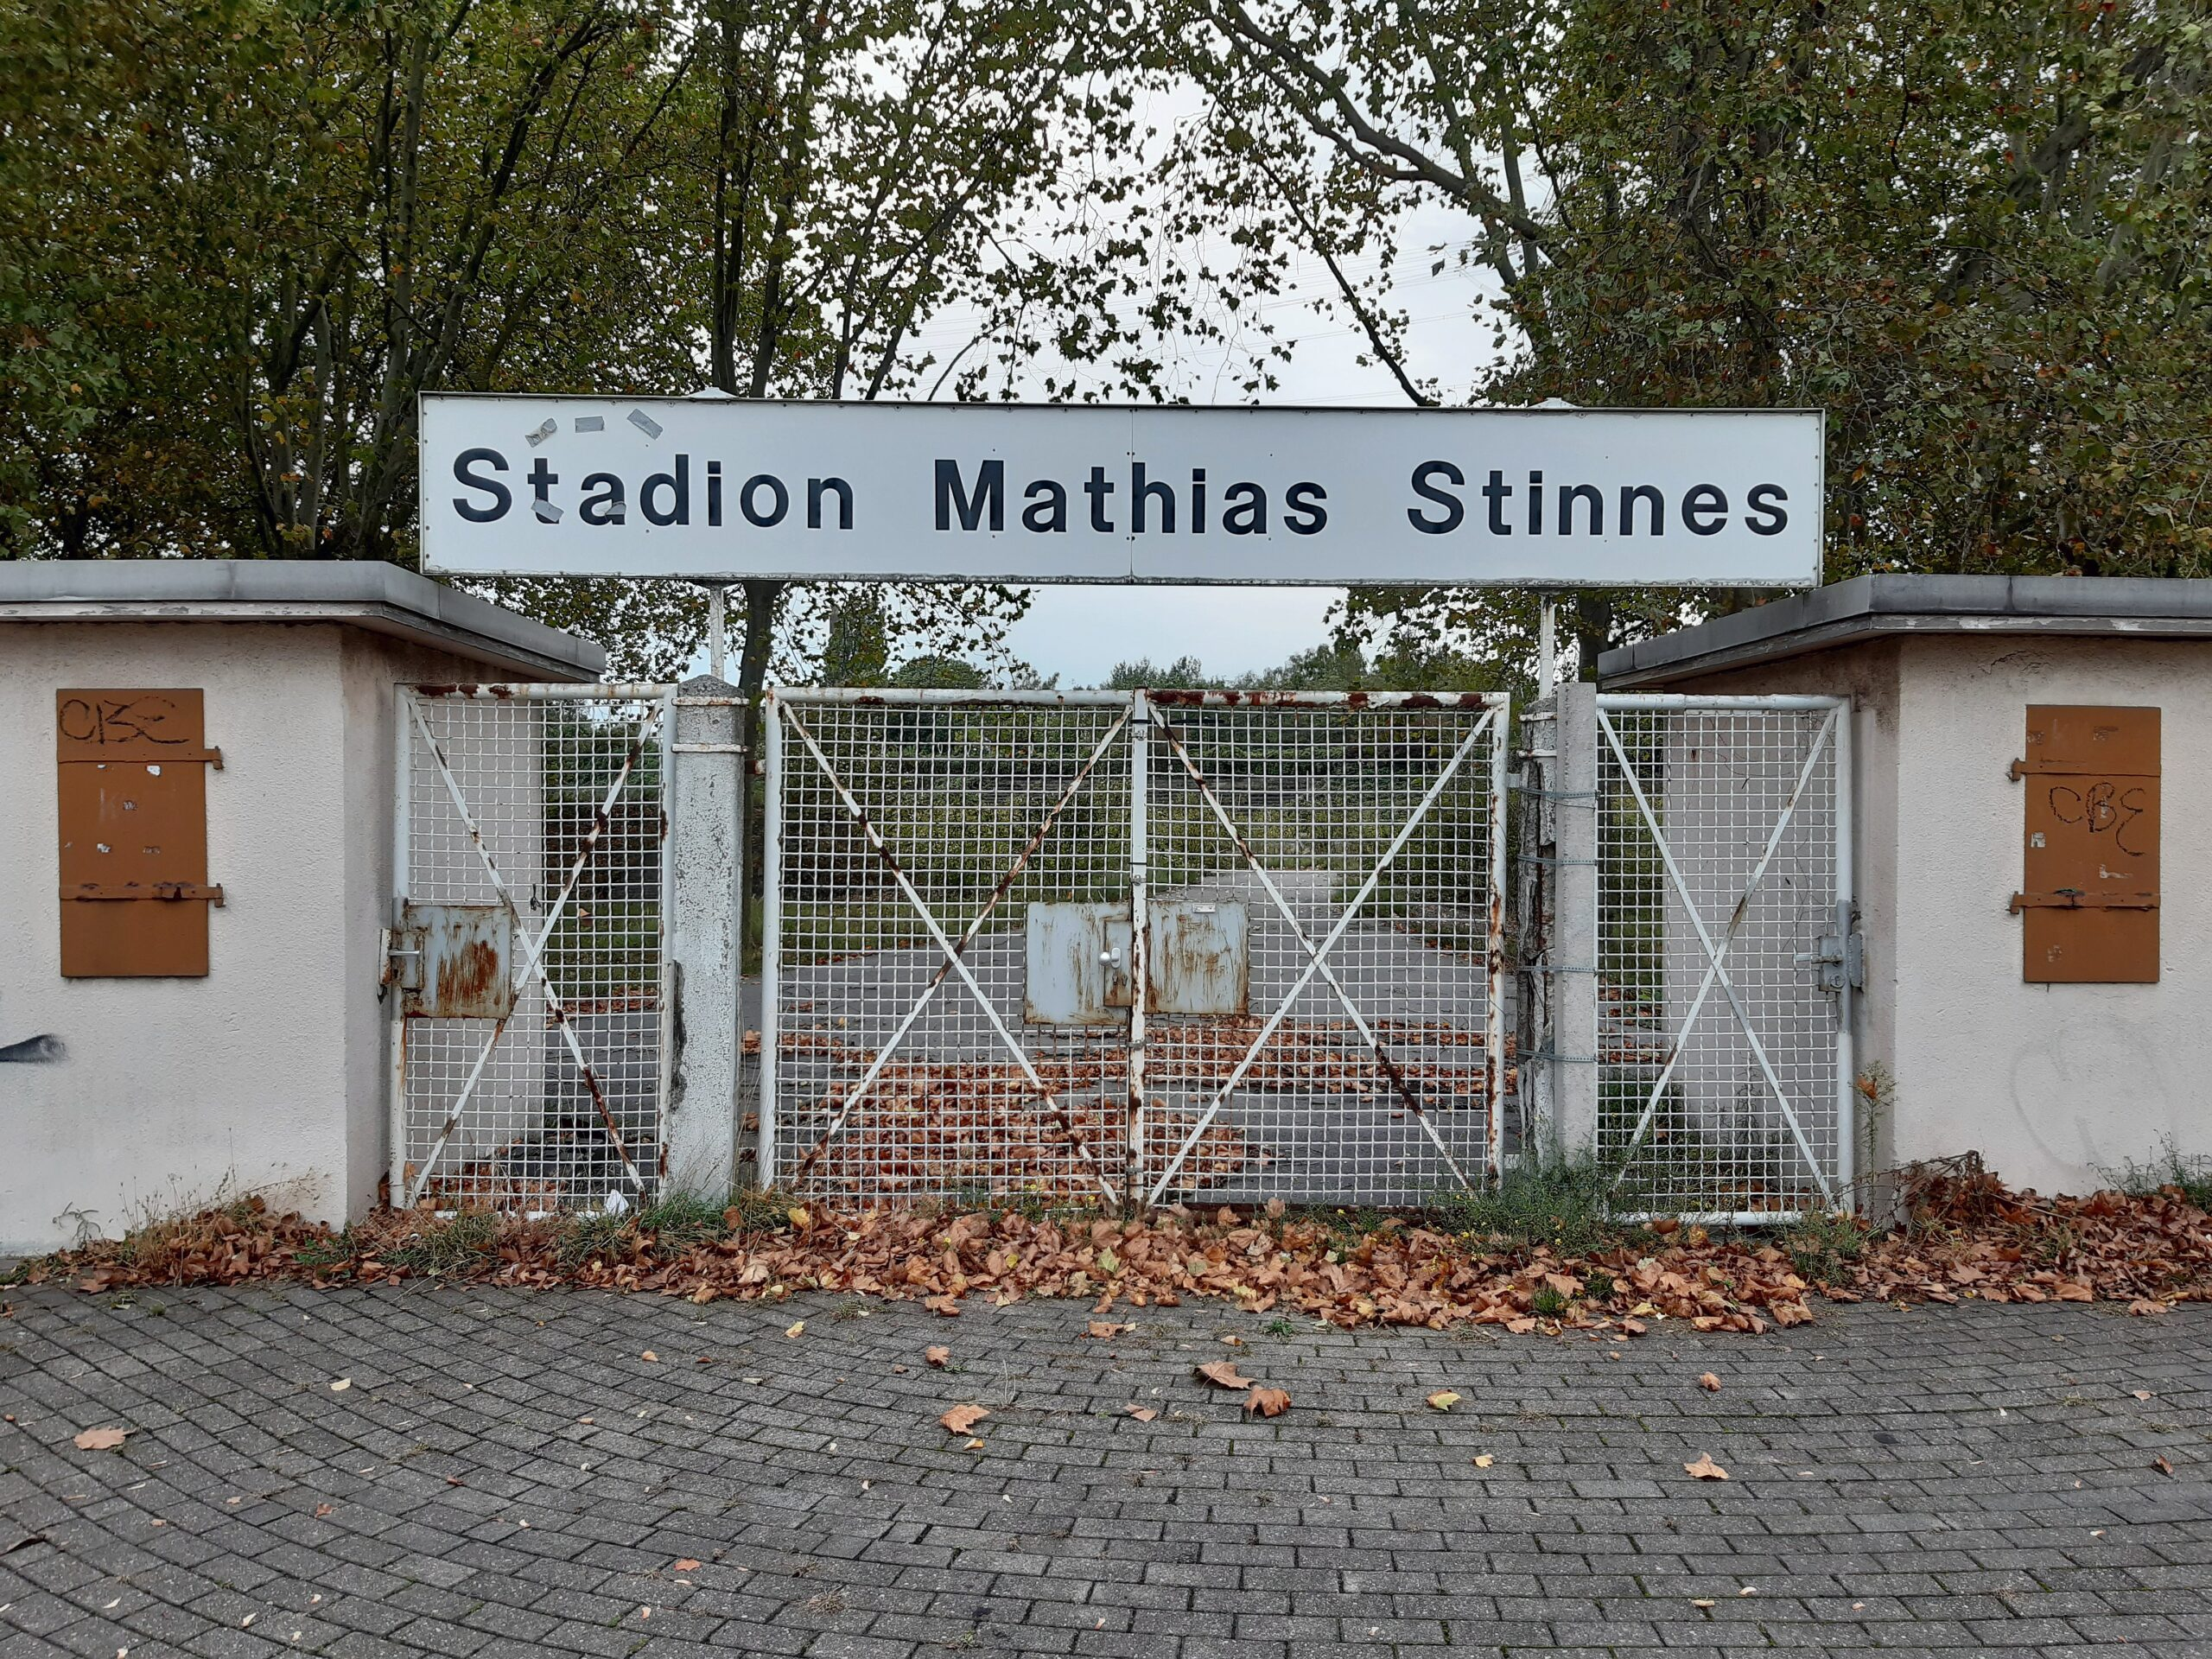 Stadion Mathias Stinnes, Essen